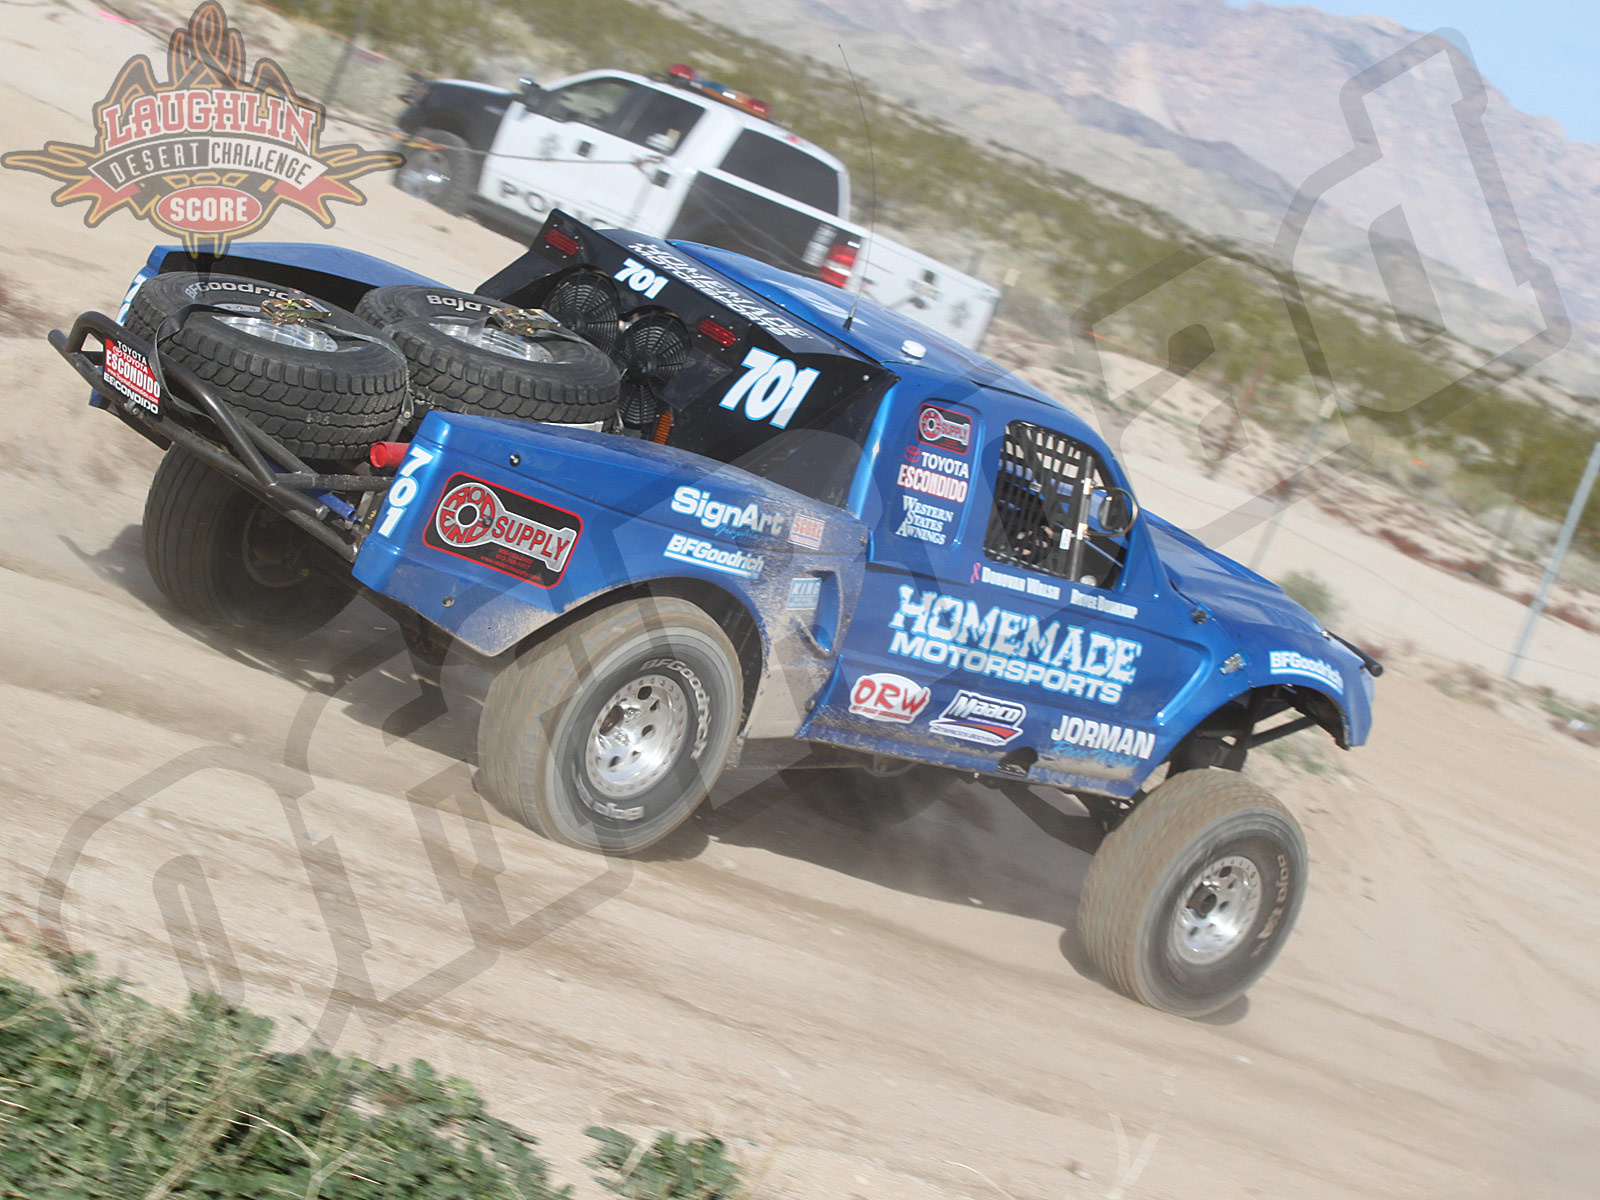 012011or 6575+2011 score laughlin desert challenge+truck classes